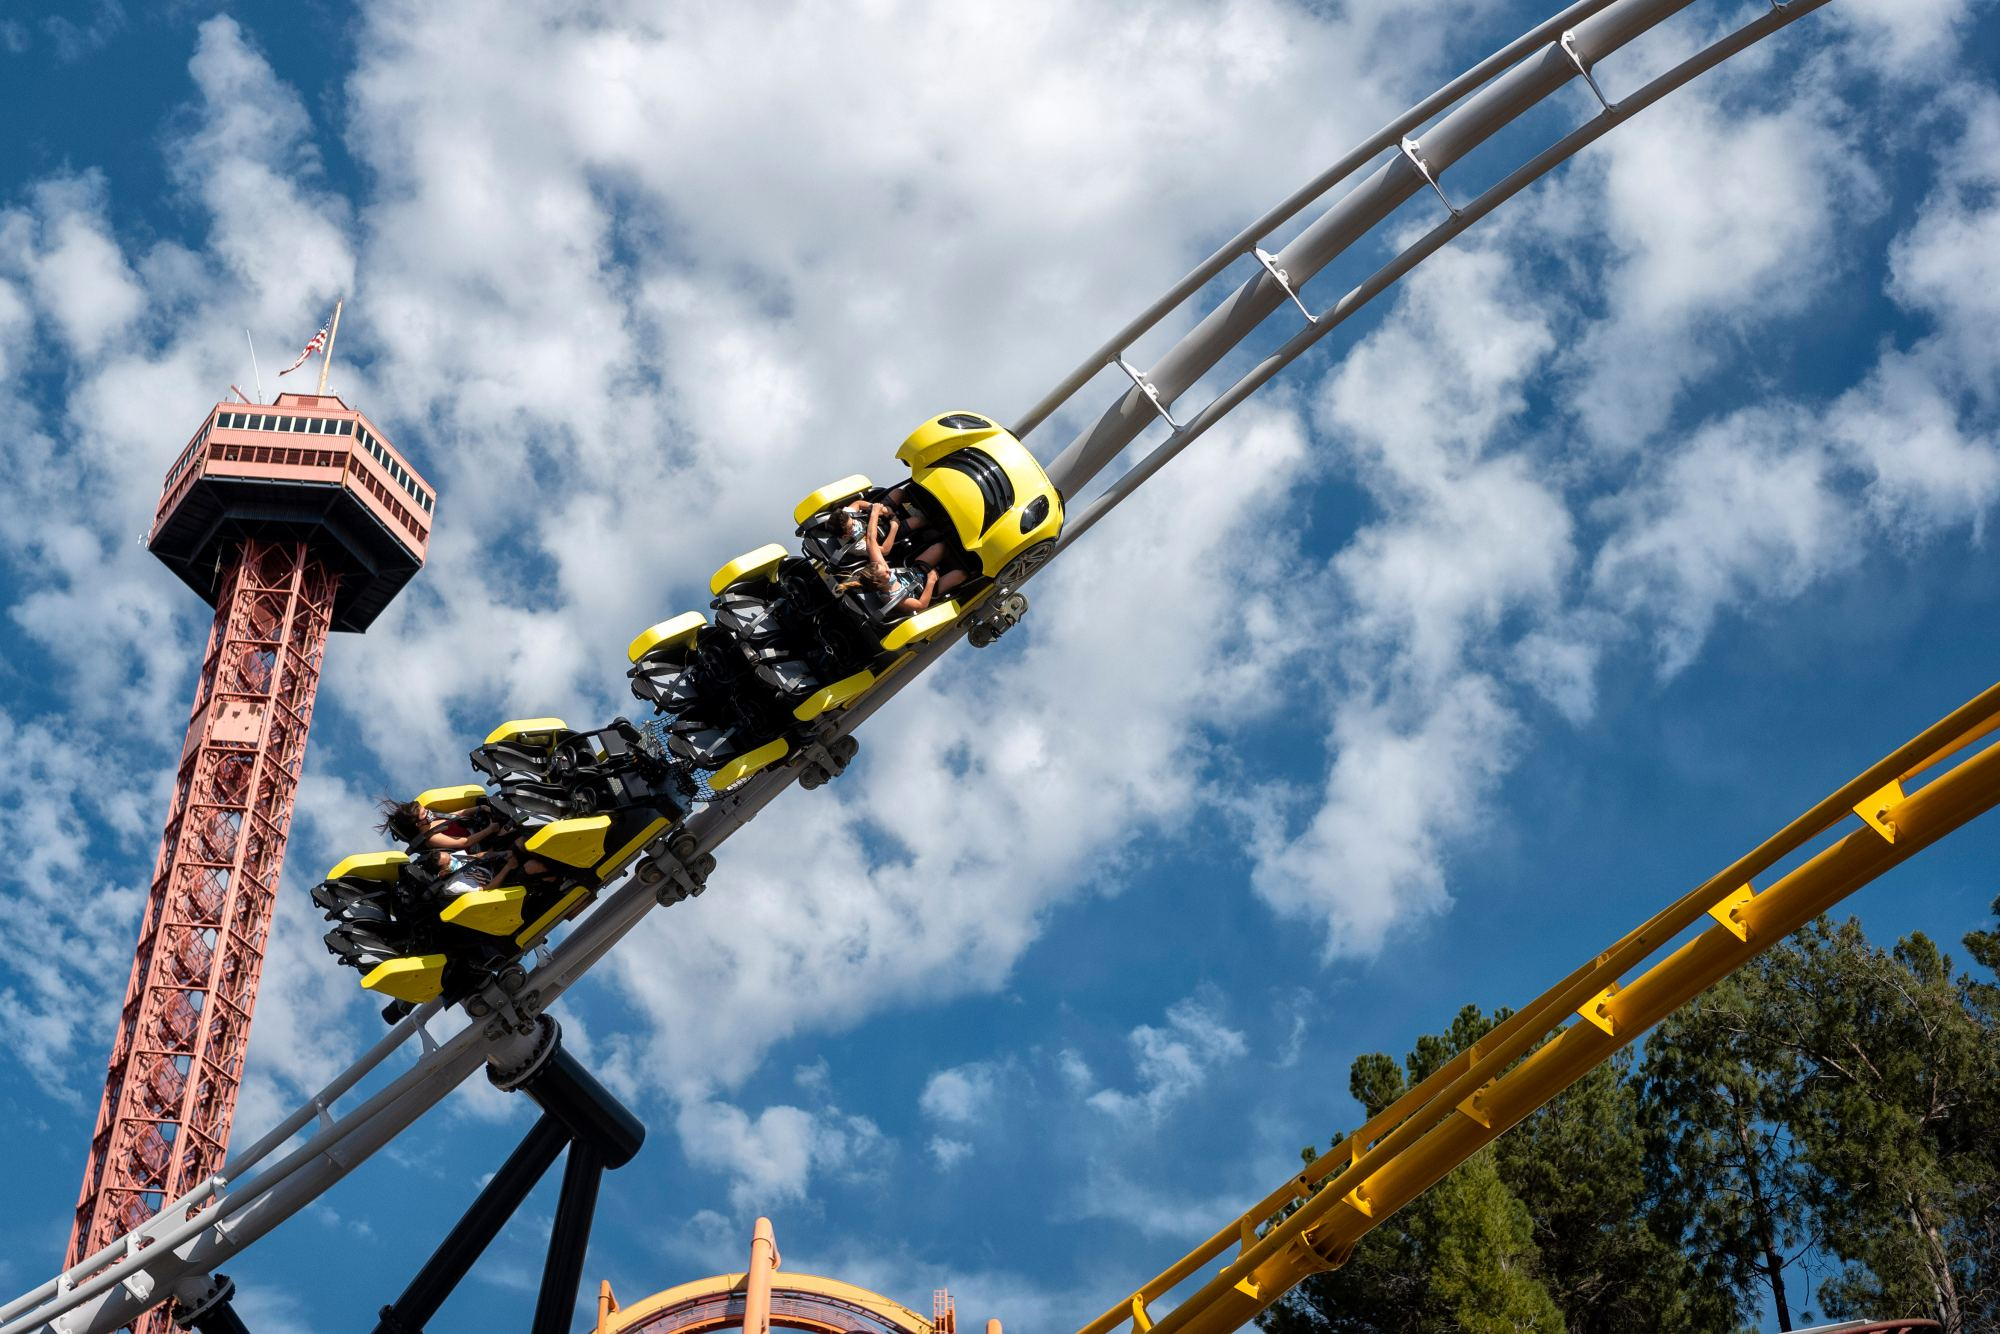 six flags spent $20 million to upgrade the park and reopened it in april 2003 under the name six flags new orleans. Disney Universal Knott S And Six Flags Can Allow Fully Vaccinated Out Of State Visitors But They Aren T Doing It Yet Orange County Register